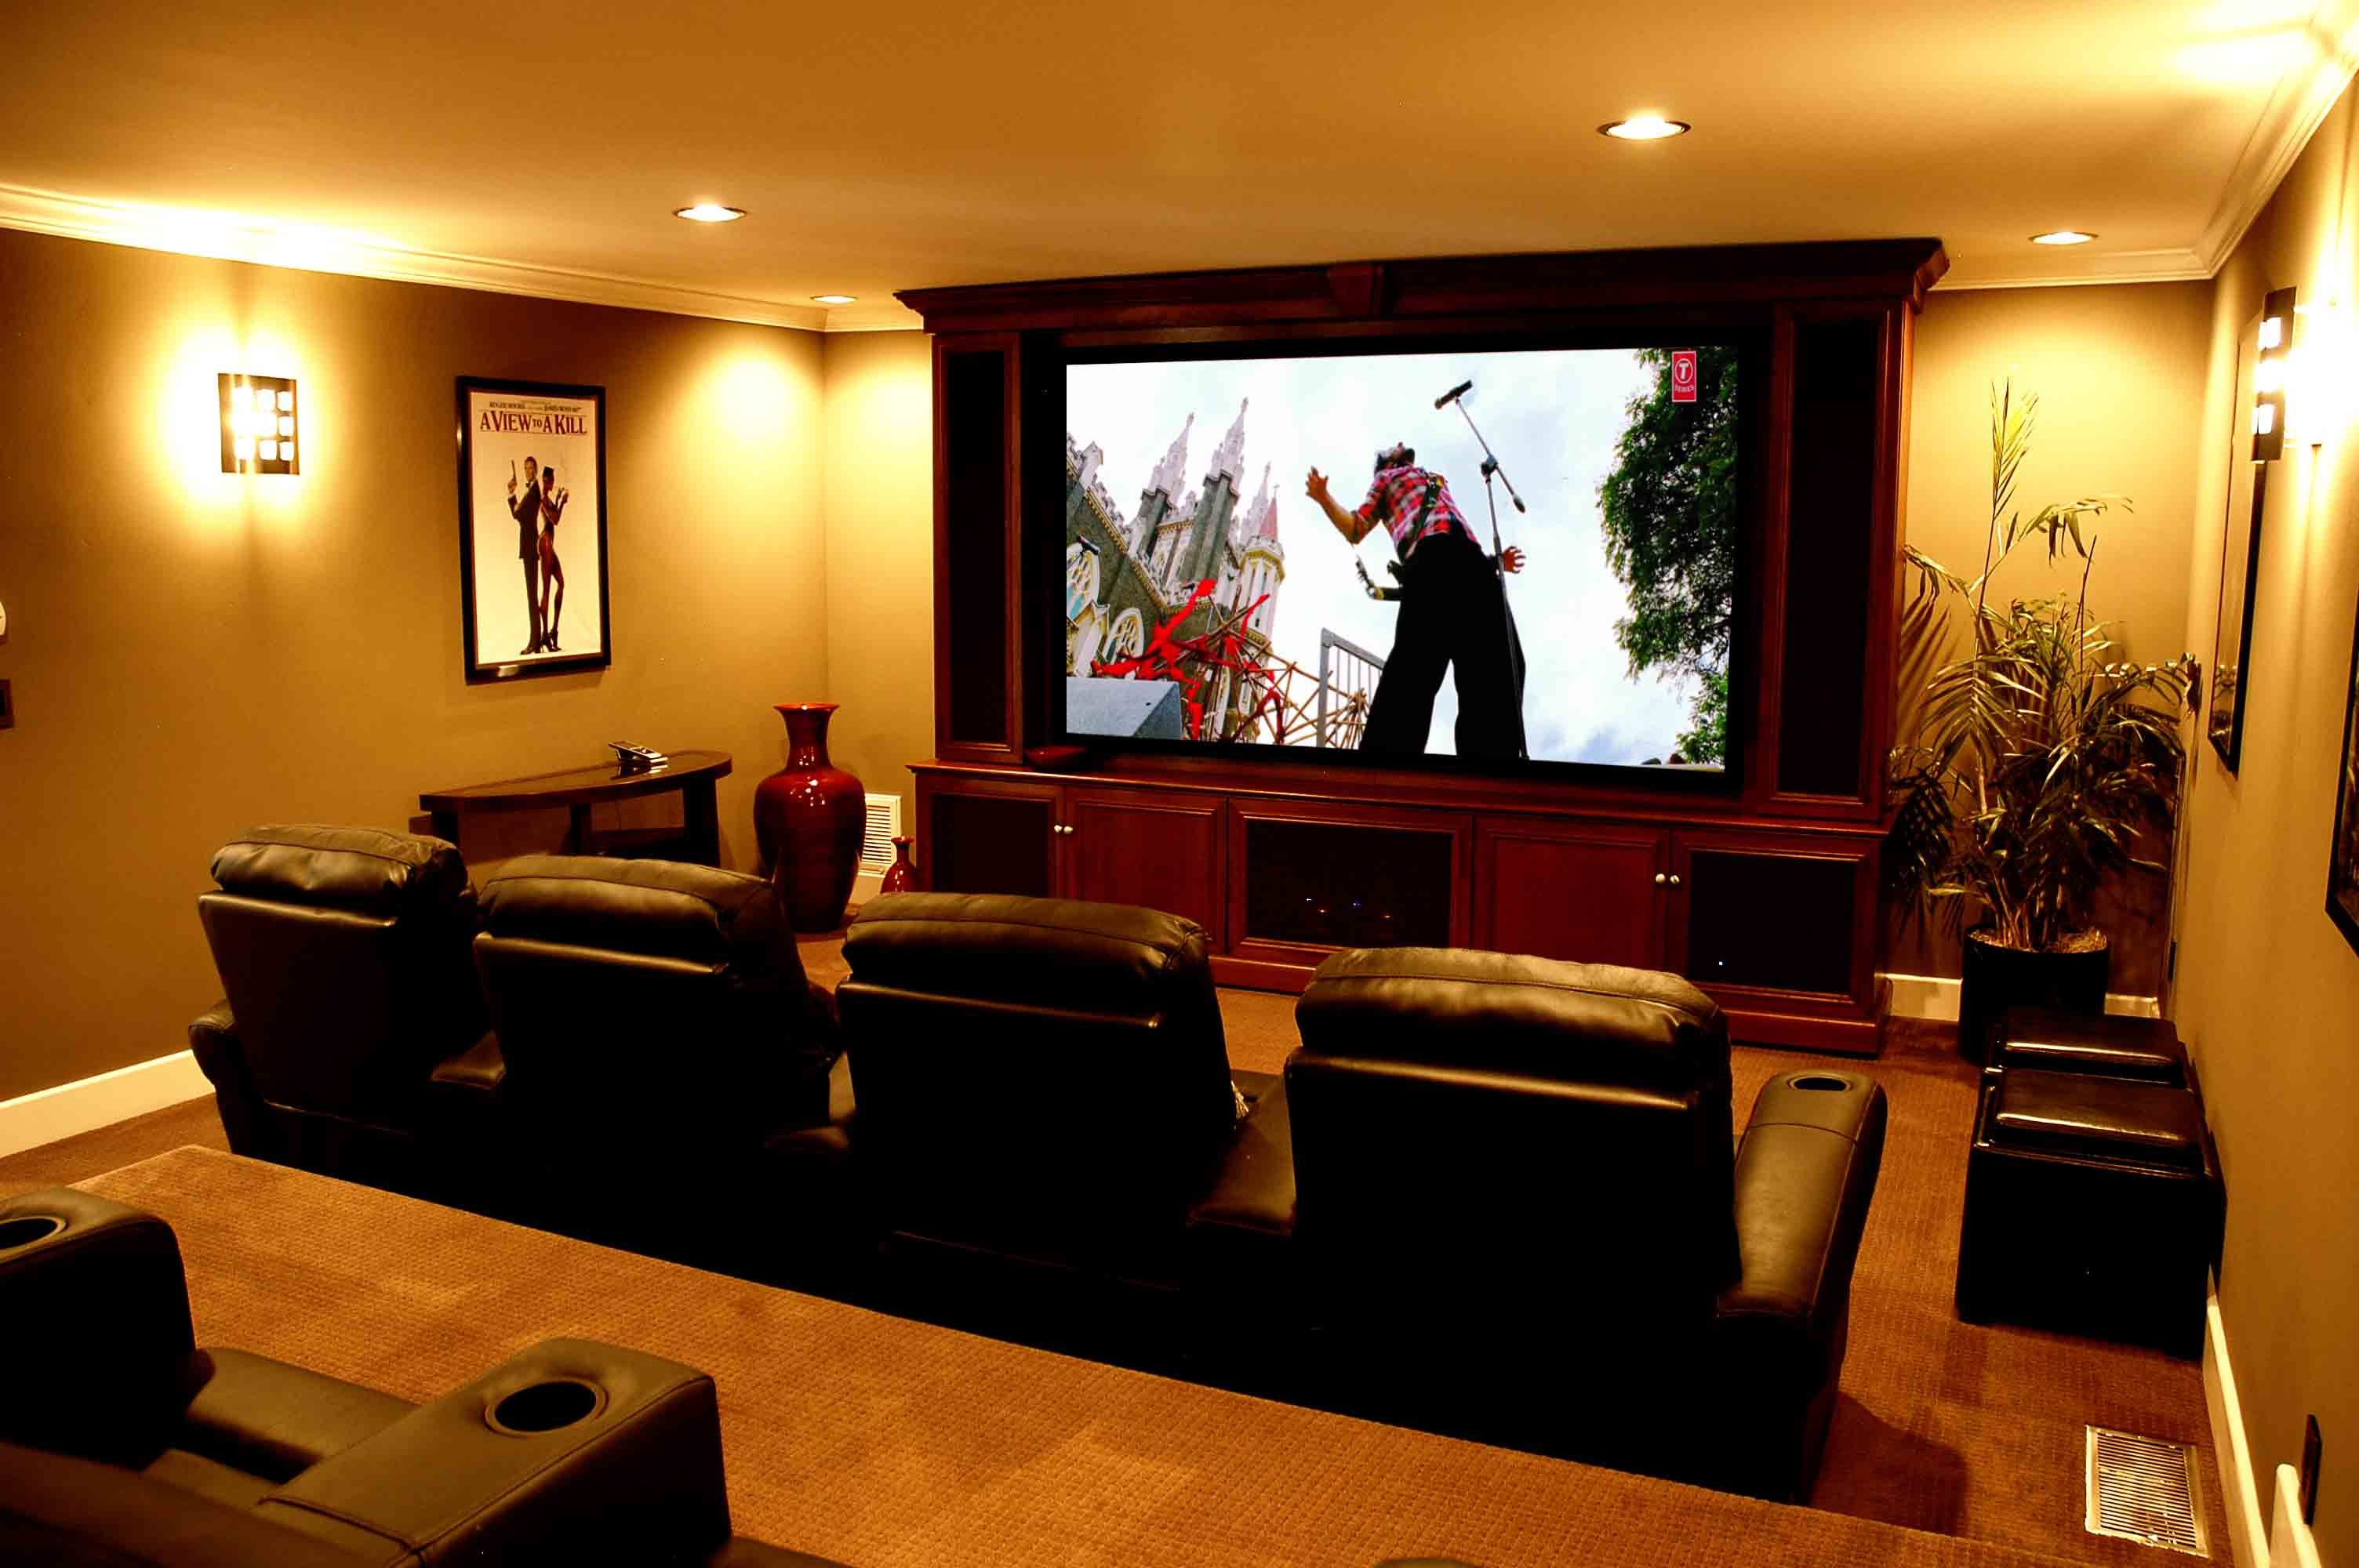 ... Home Movie Theater Decor Ideas Racetotop Ideas. 4